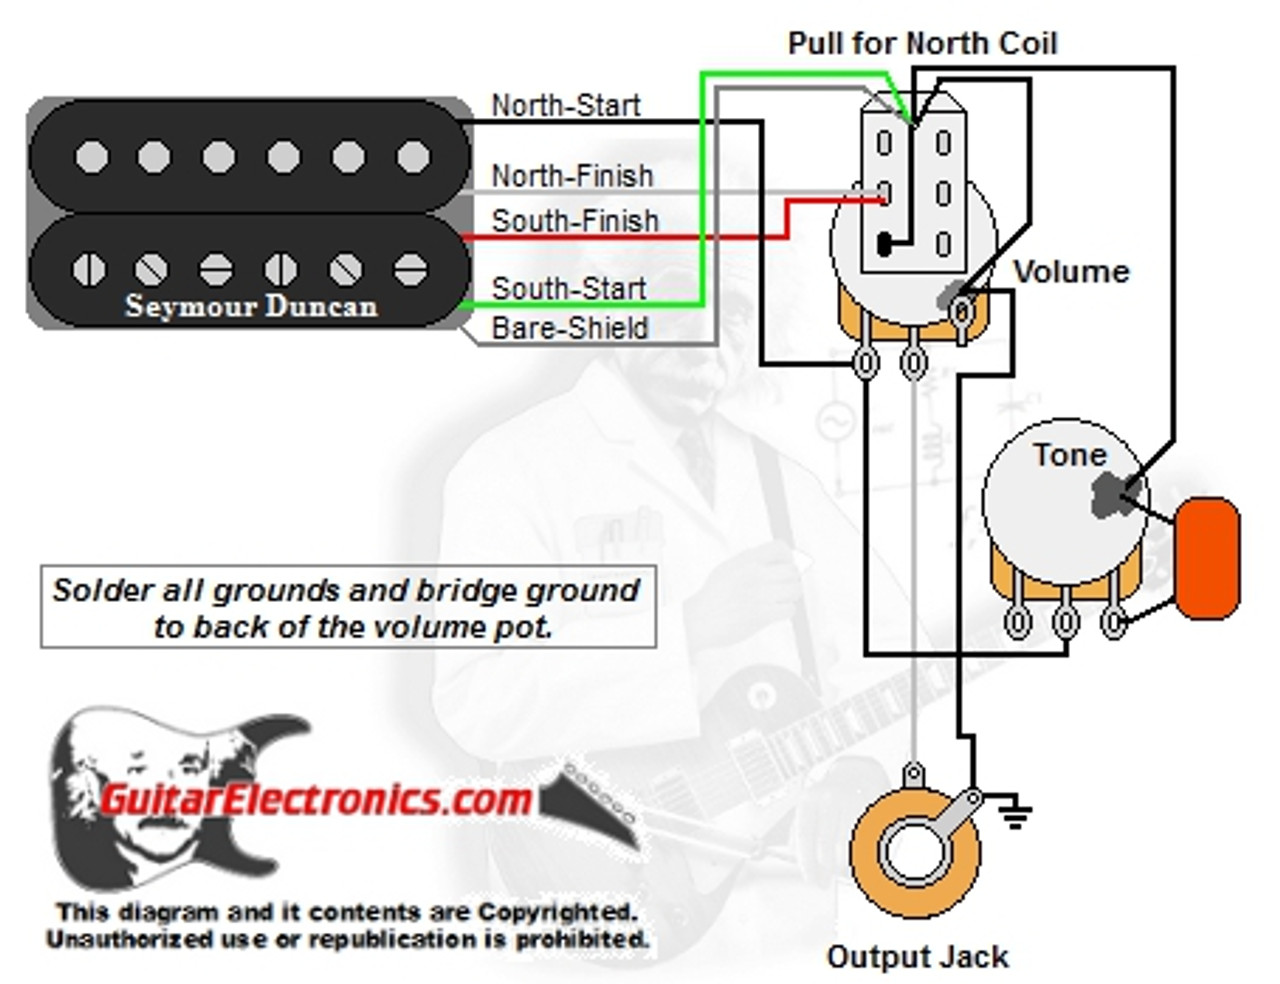 small resolution of 1 humbucker 1 volume 1tone pull for north single coil guitar wiring diagram 2 humbucker 1 volume 1 tone guitar wiring diagram 1 humbucker 1 volume